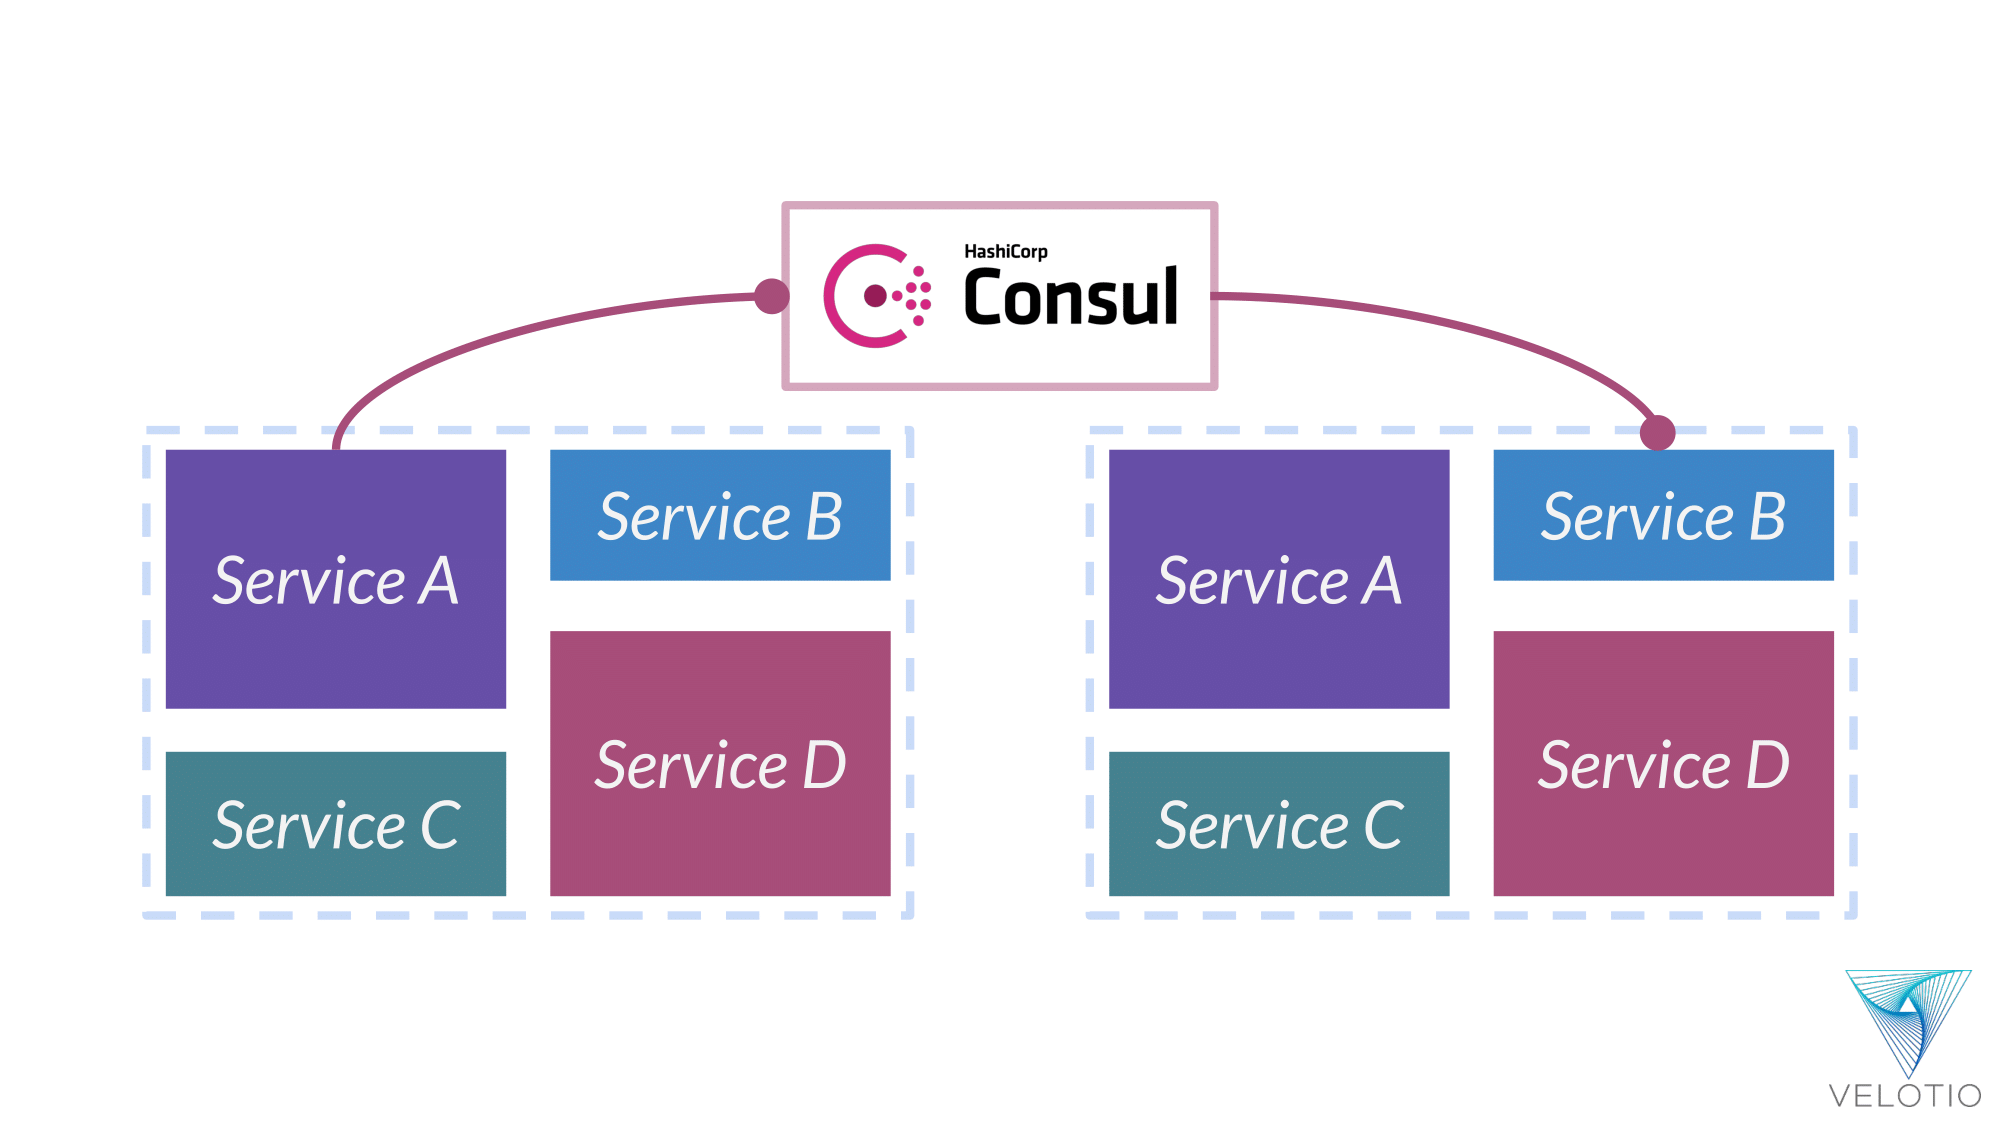 Consul's Service Registry helps Service A find Service B and establish communication